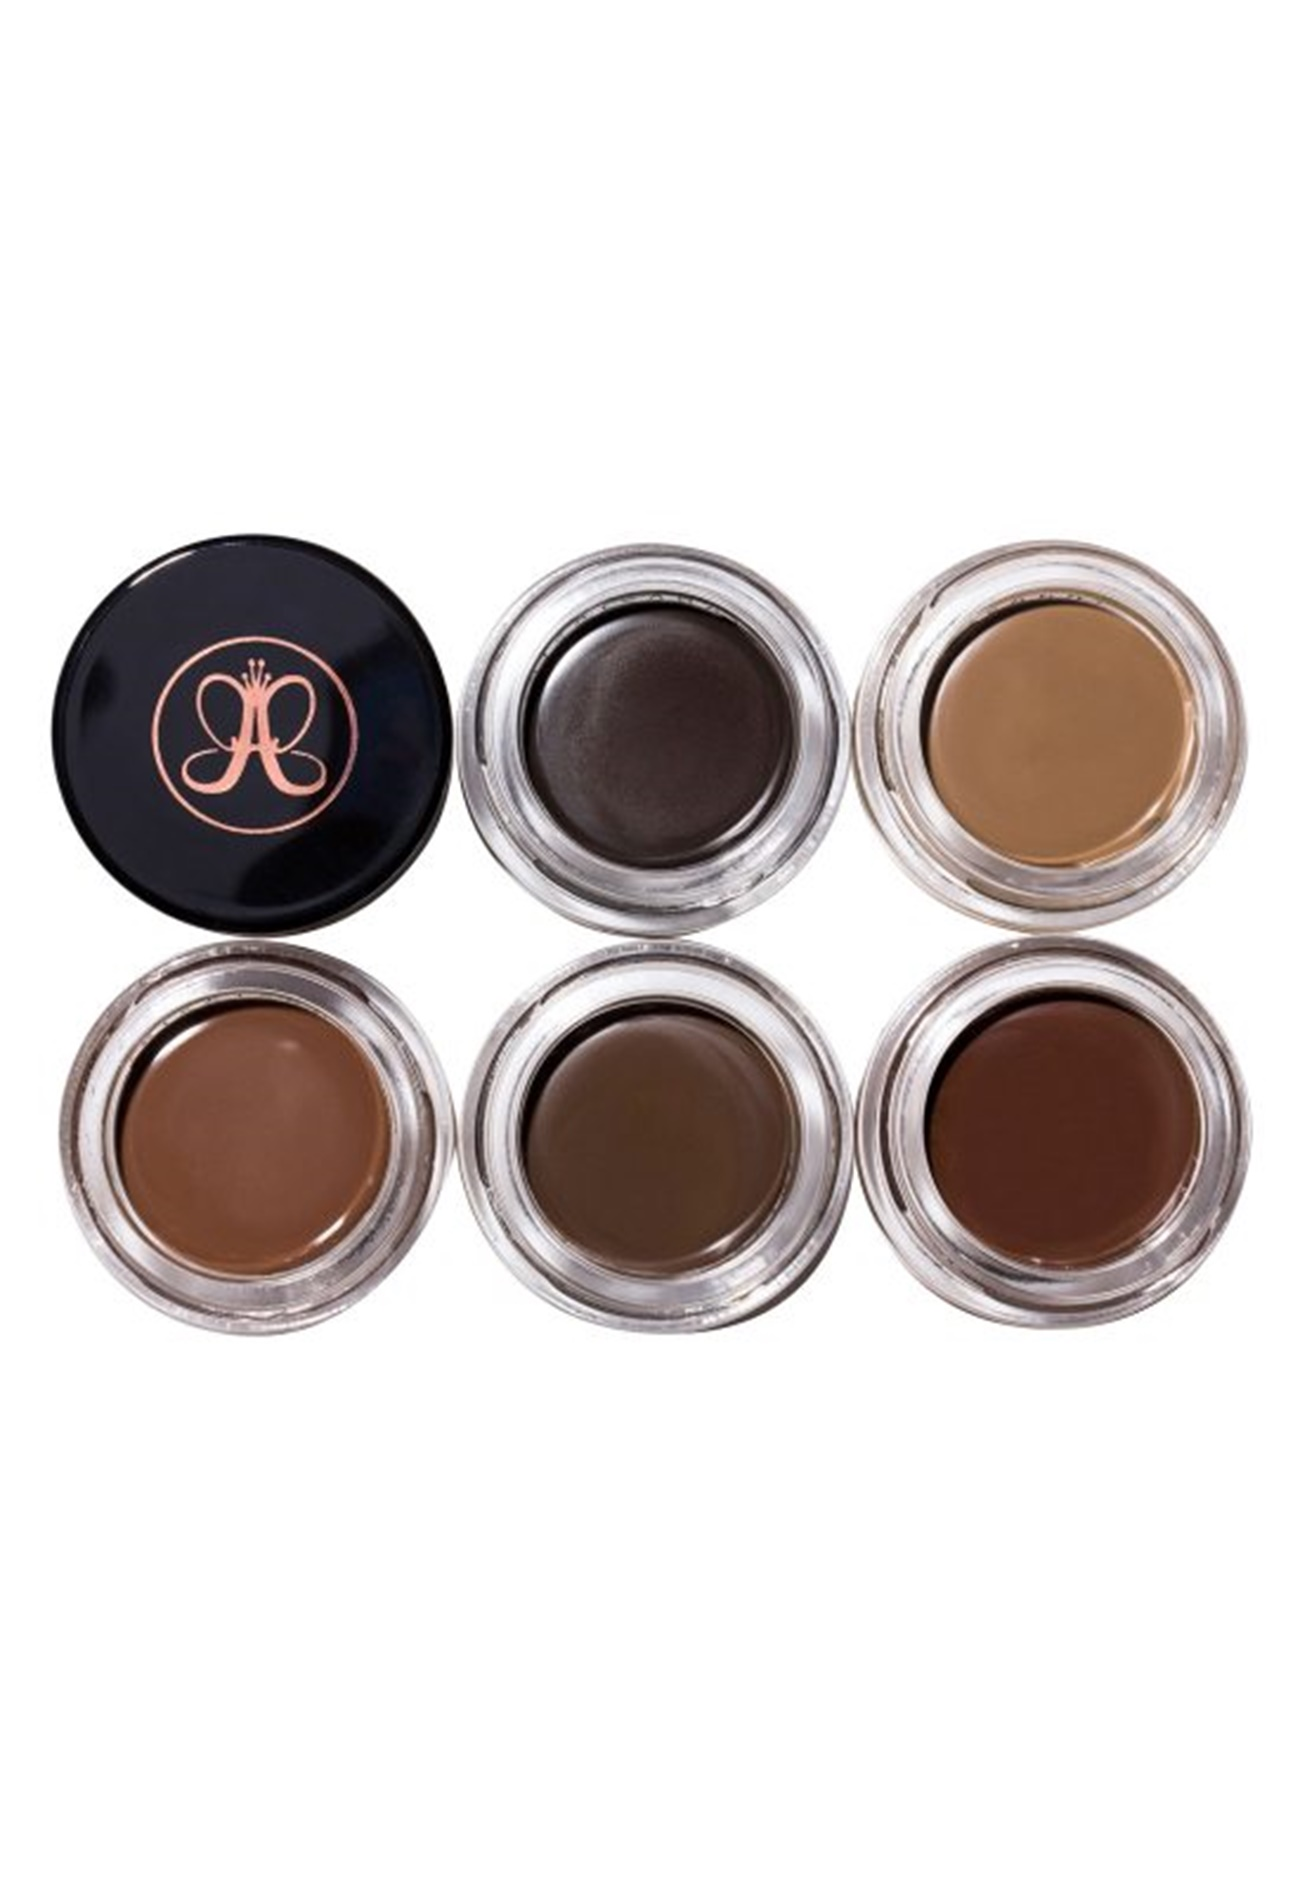 anastasia beverly hills brow dip pomade anastasia beverly hills anastasia dip brow pomade taupe. Black Bedroom Furniture Sets. Home Design Ideas